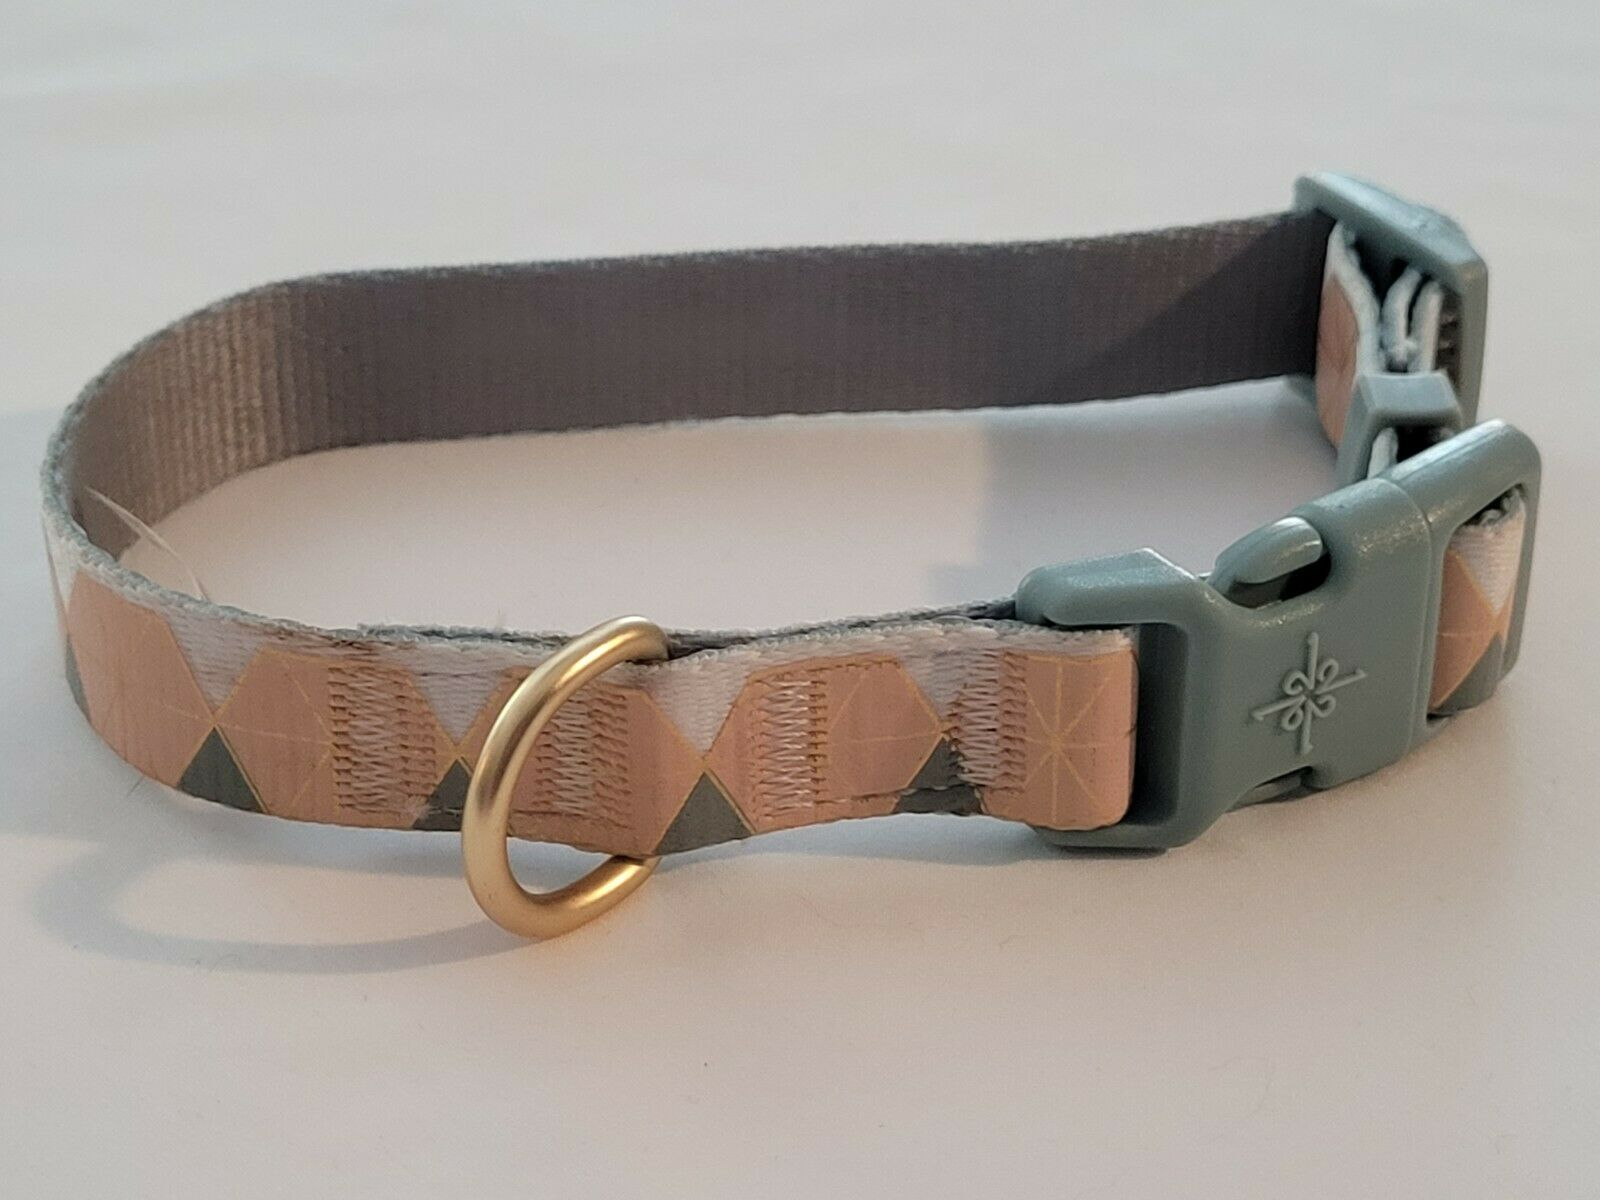 Dog Collar New, Color Peach With Blue/Green, Max Length 14in, 3/4in Wide, Small - $10.00